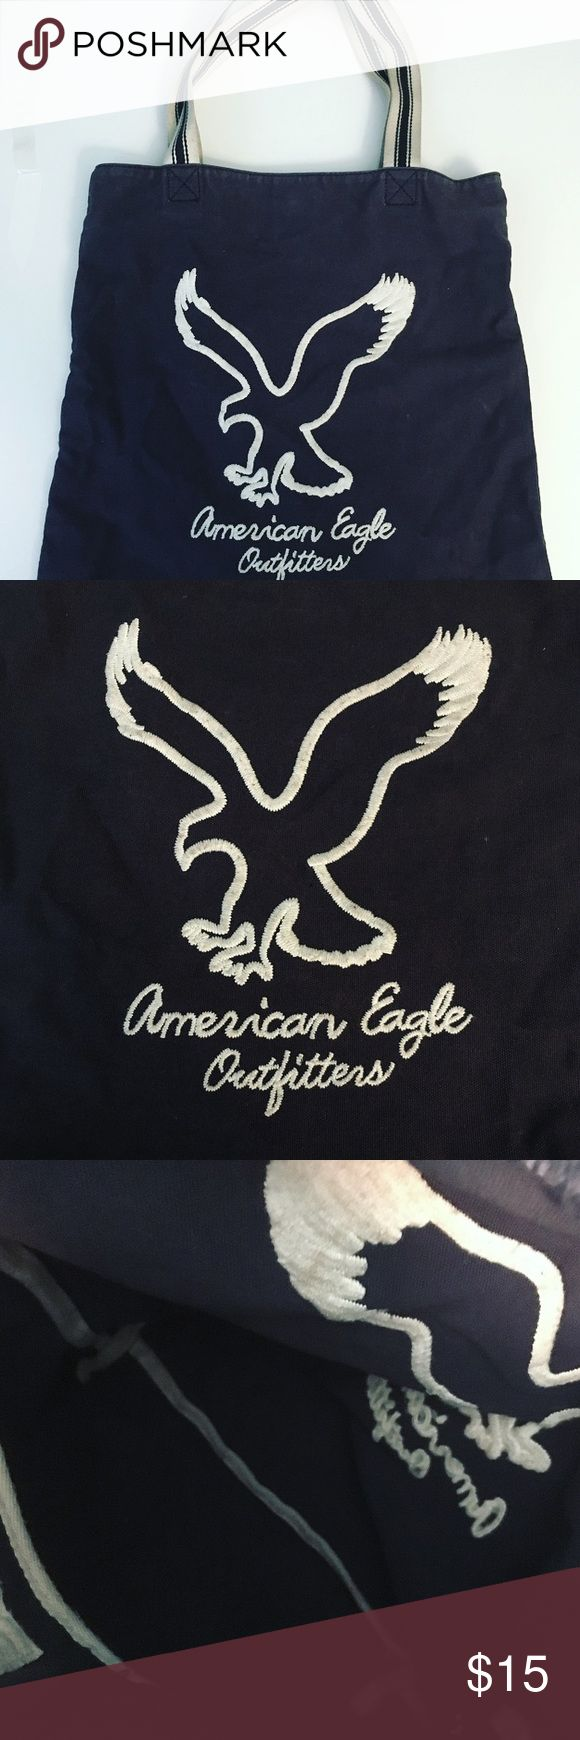 American Eagle Tote Bag Navy Blue, thick material American Eagle tote bag. Perfect for the beach! It is in great condition, has nice thick straps so it's comfortable on the shoulder. Had inside zipper pocket as well. American Eagle Outfitters Bags Totes